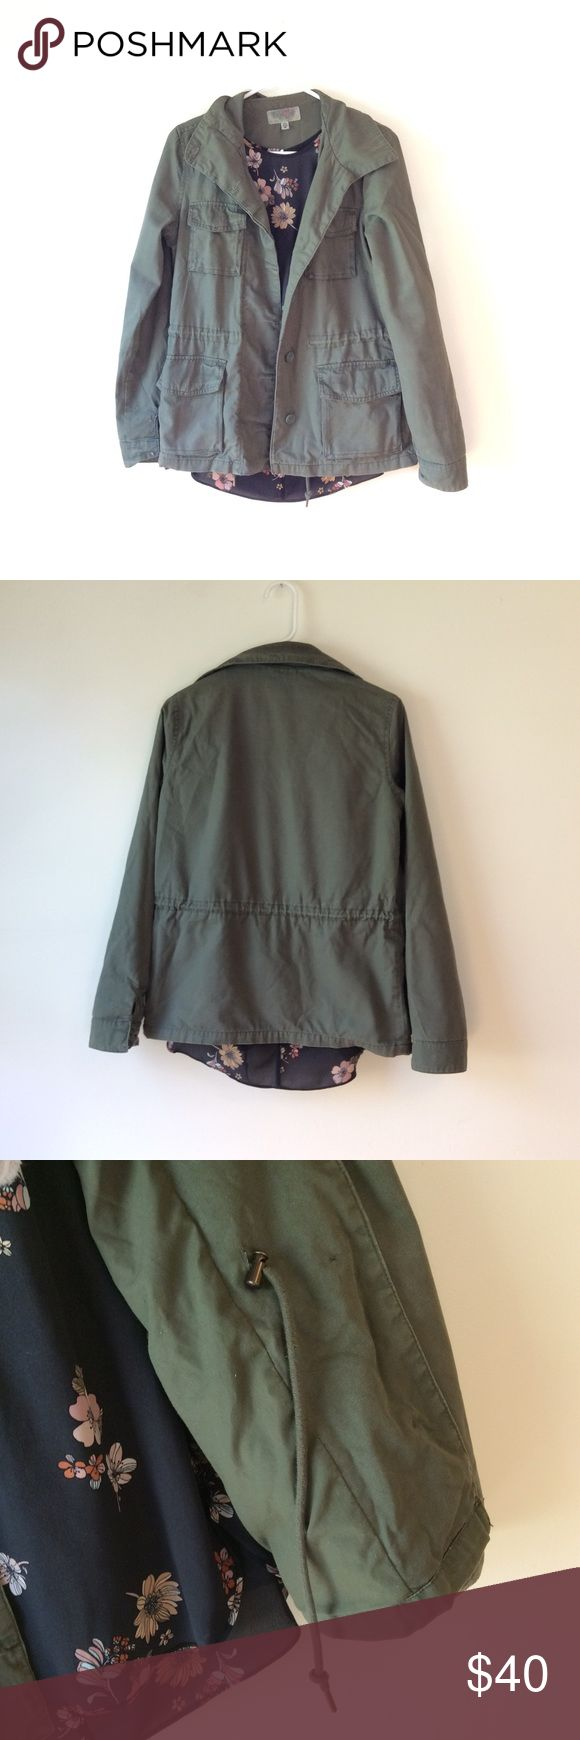 Classic Army Green Coat Button up, army green jacket with adjustable drawstring. Perfect jacket for the transitional seasons! Ecote Jackets & Coats